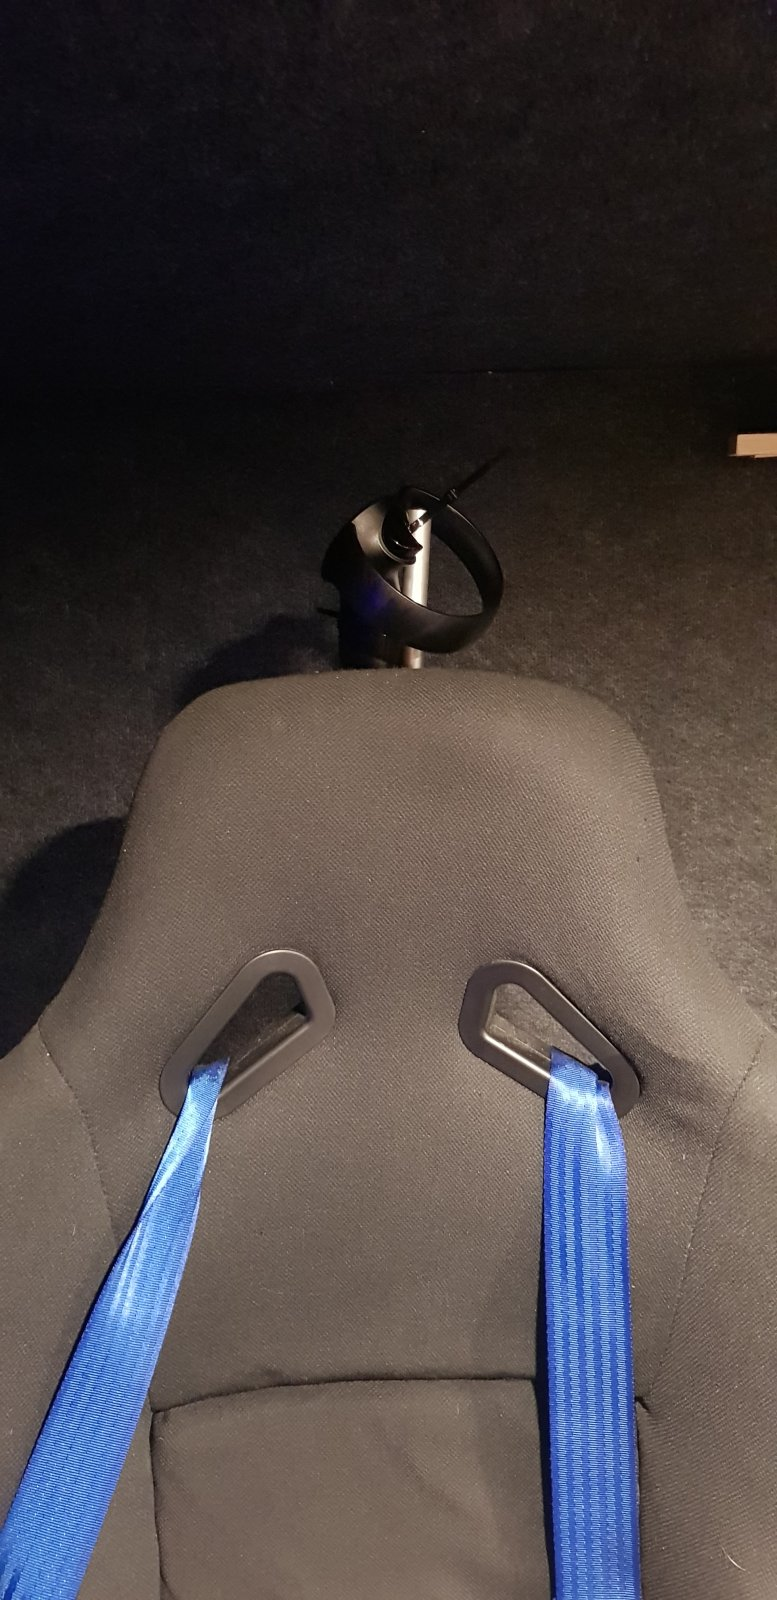 VR Motion Cancellation - Time to test!